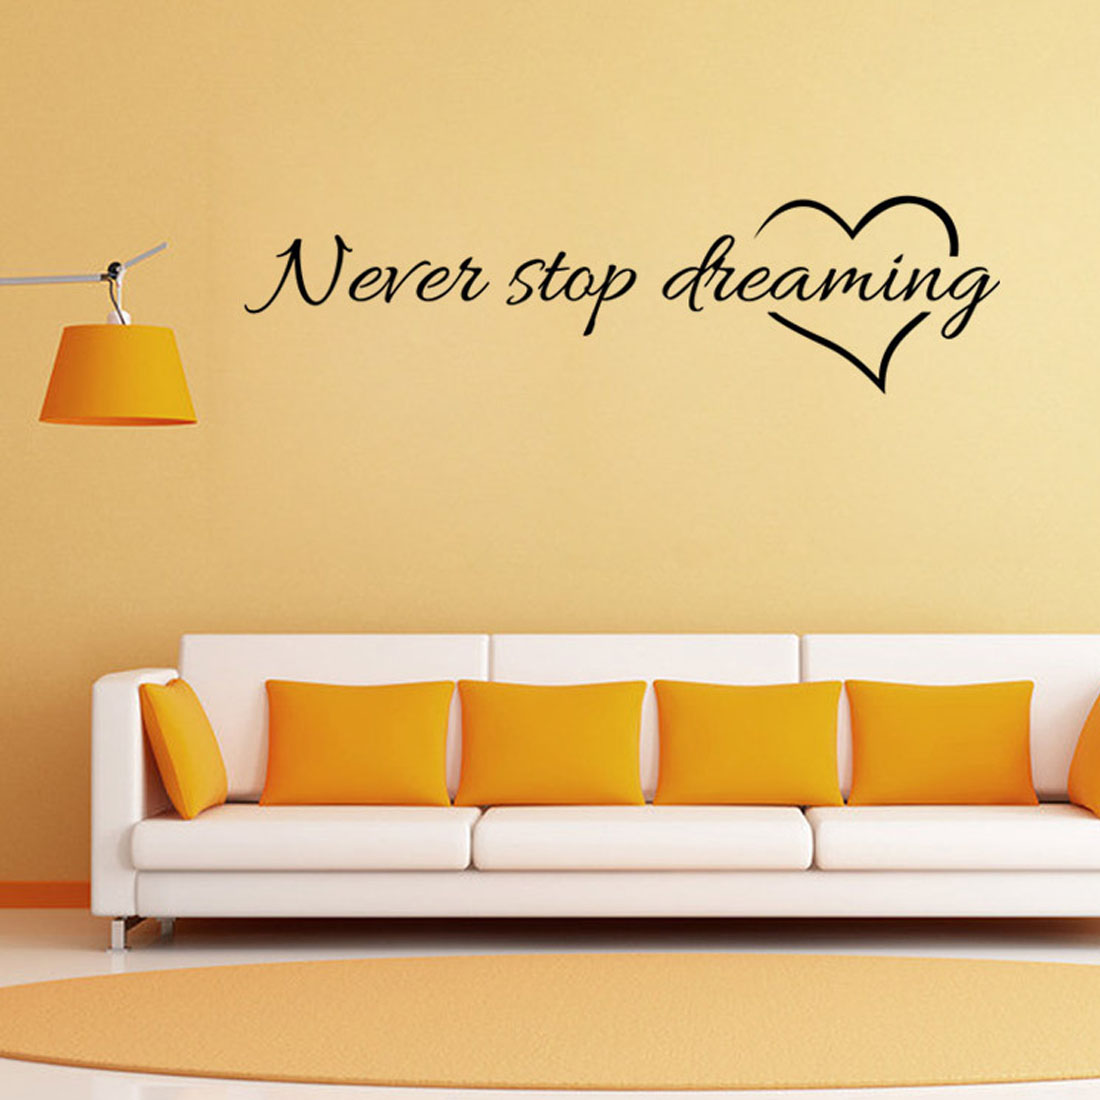 Hot Never stop dreaming wall stickers bedroom quarto decorative ...